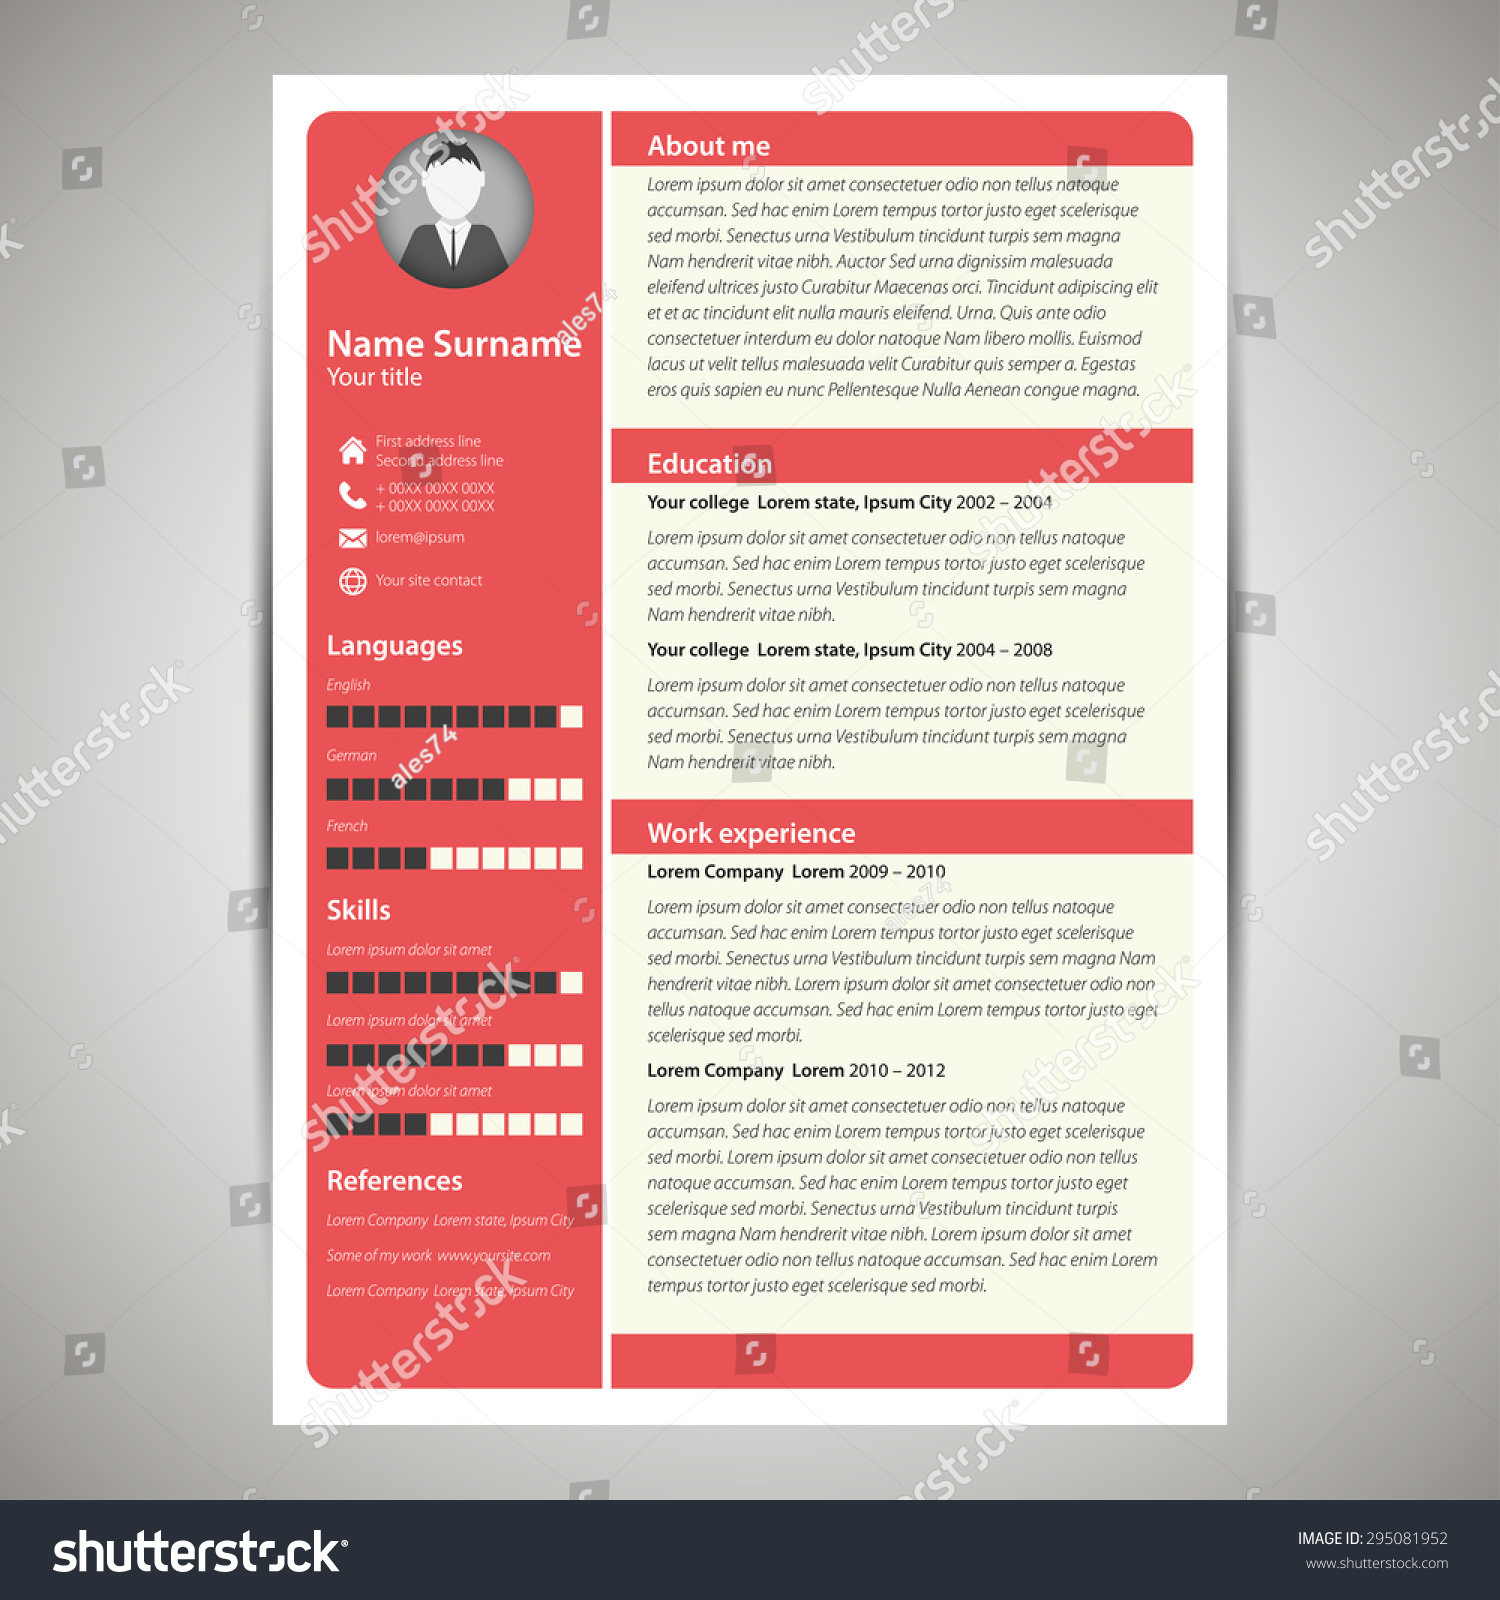 resume Flat Resume Design red flat resume cv template stock vector 295081952 shutterstock and template